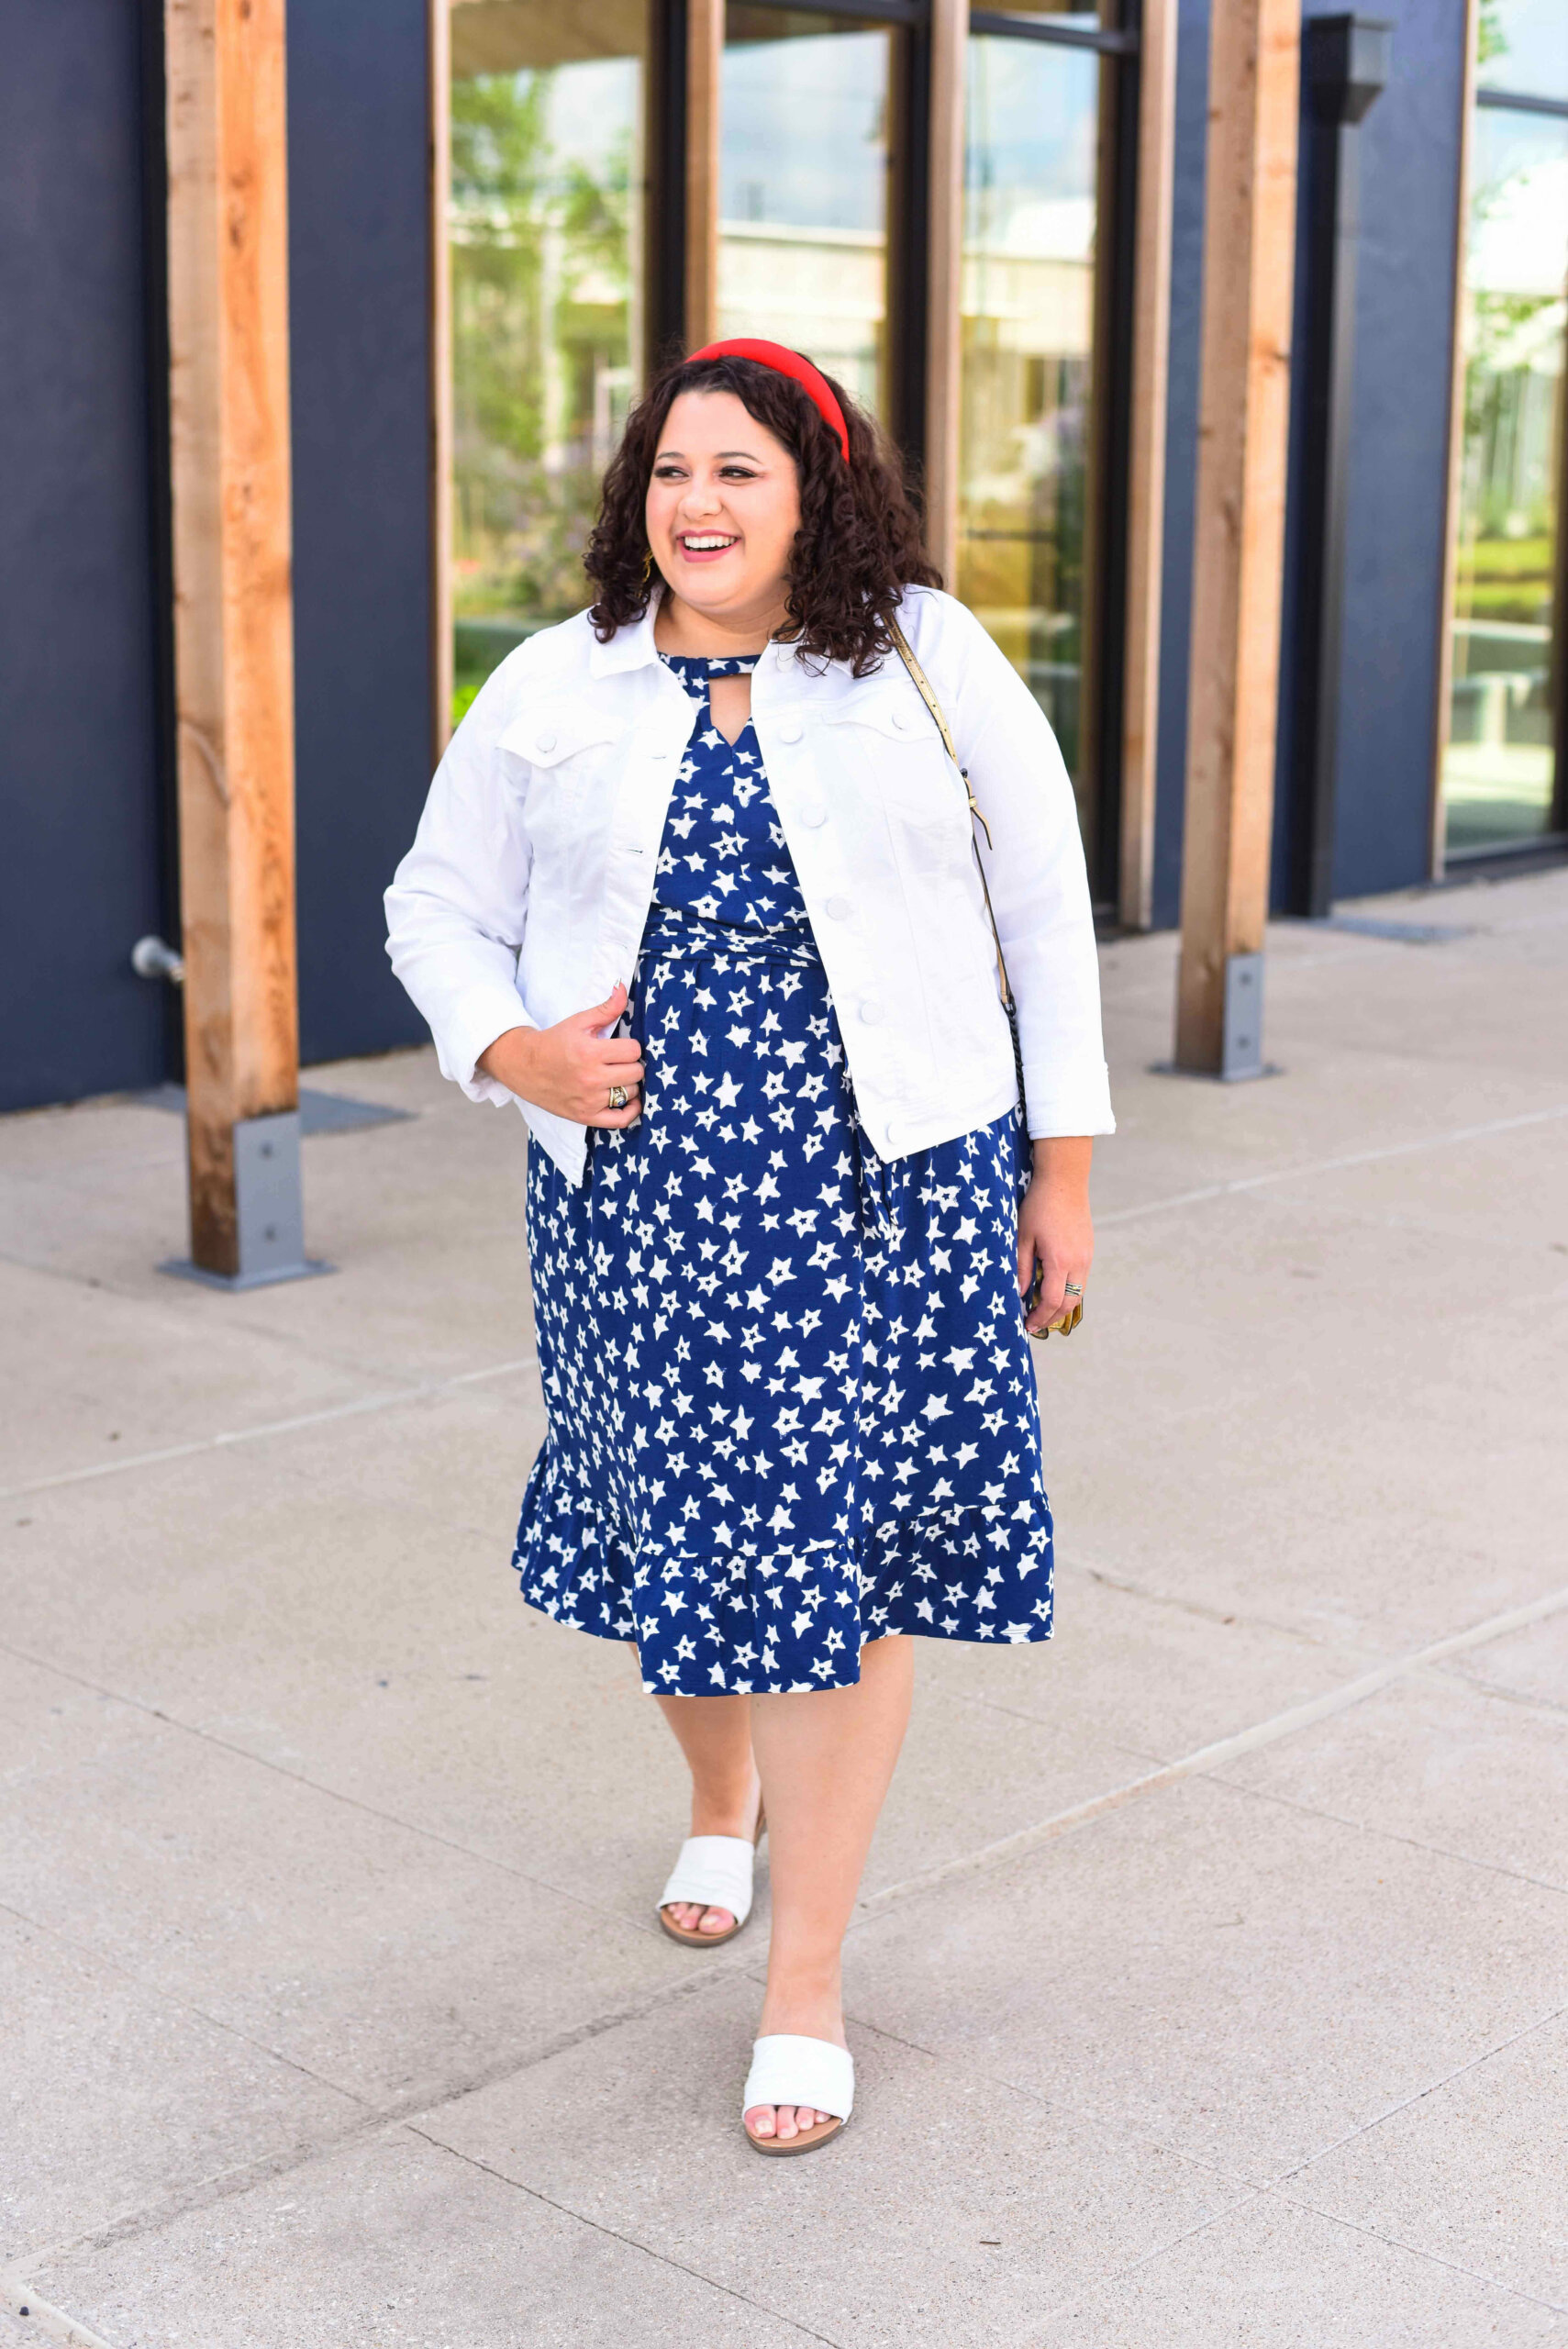 The perfect red, white and blue plus size outfit for Memorial Day or Fourth of July